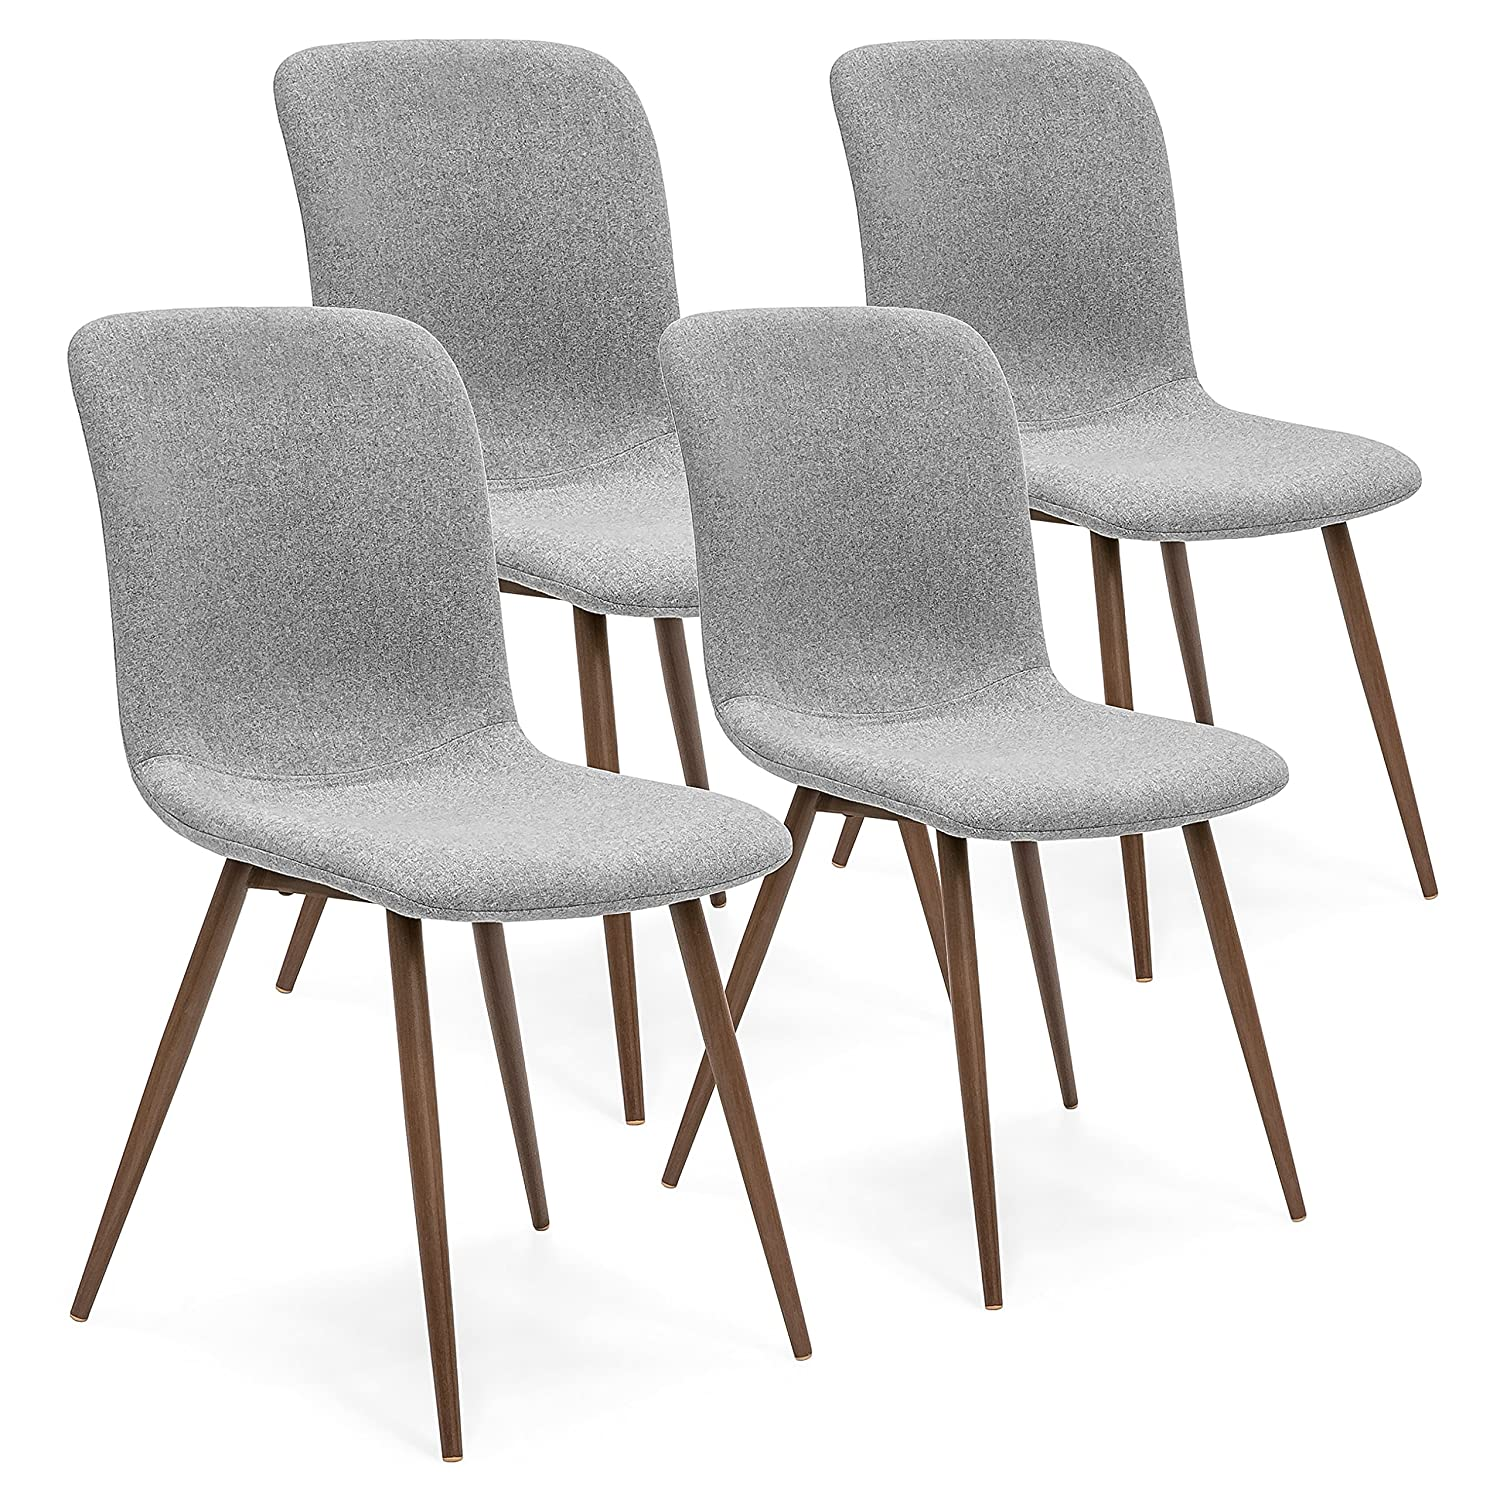 Amazon com best choice products set of 4 mid century modern dining room chairs w fabric upholstery and metal legs gray chairs